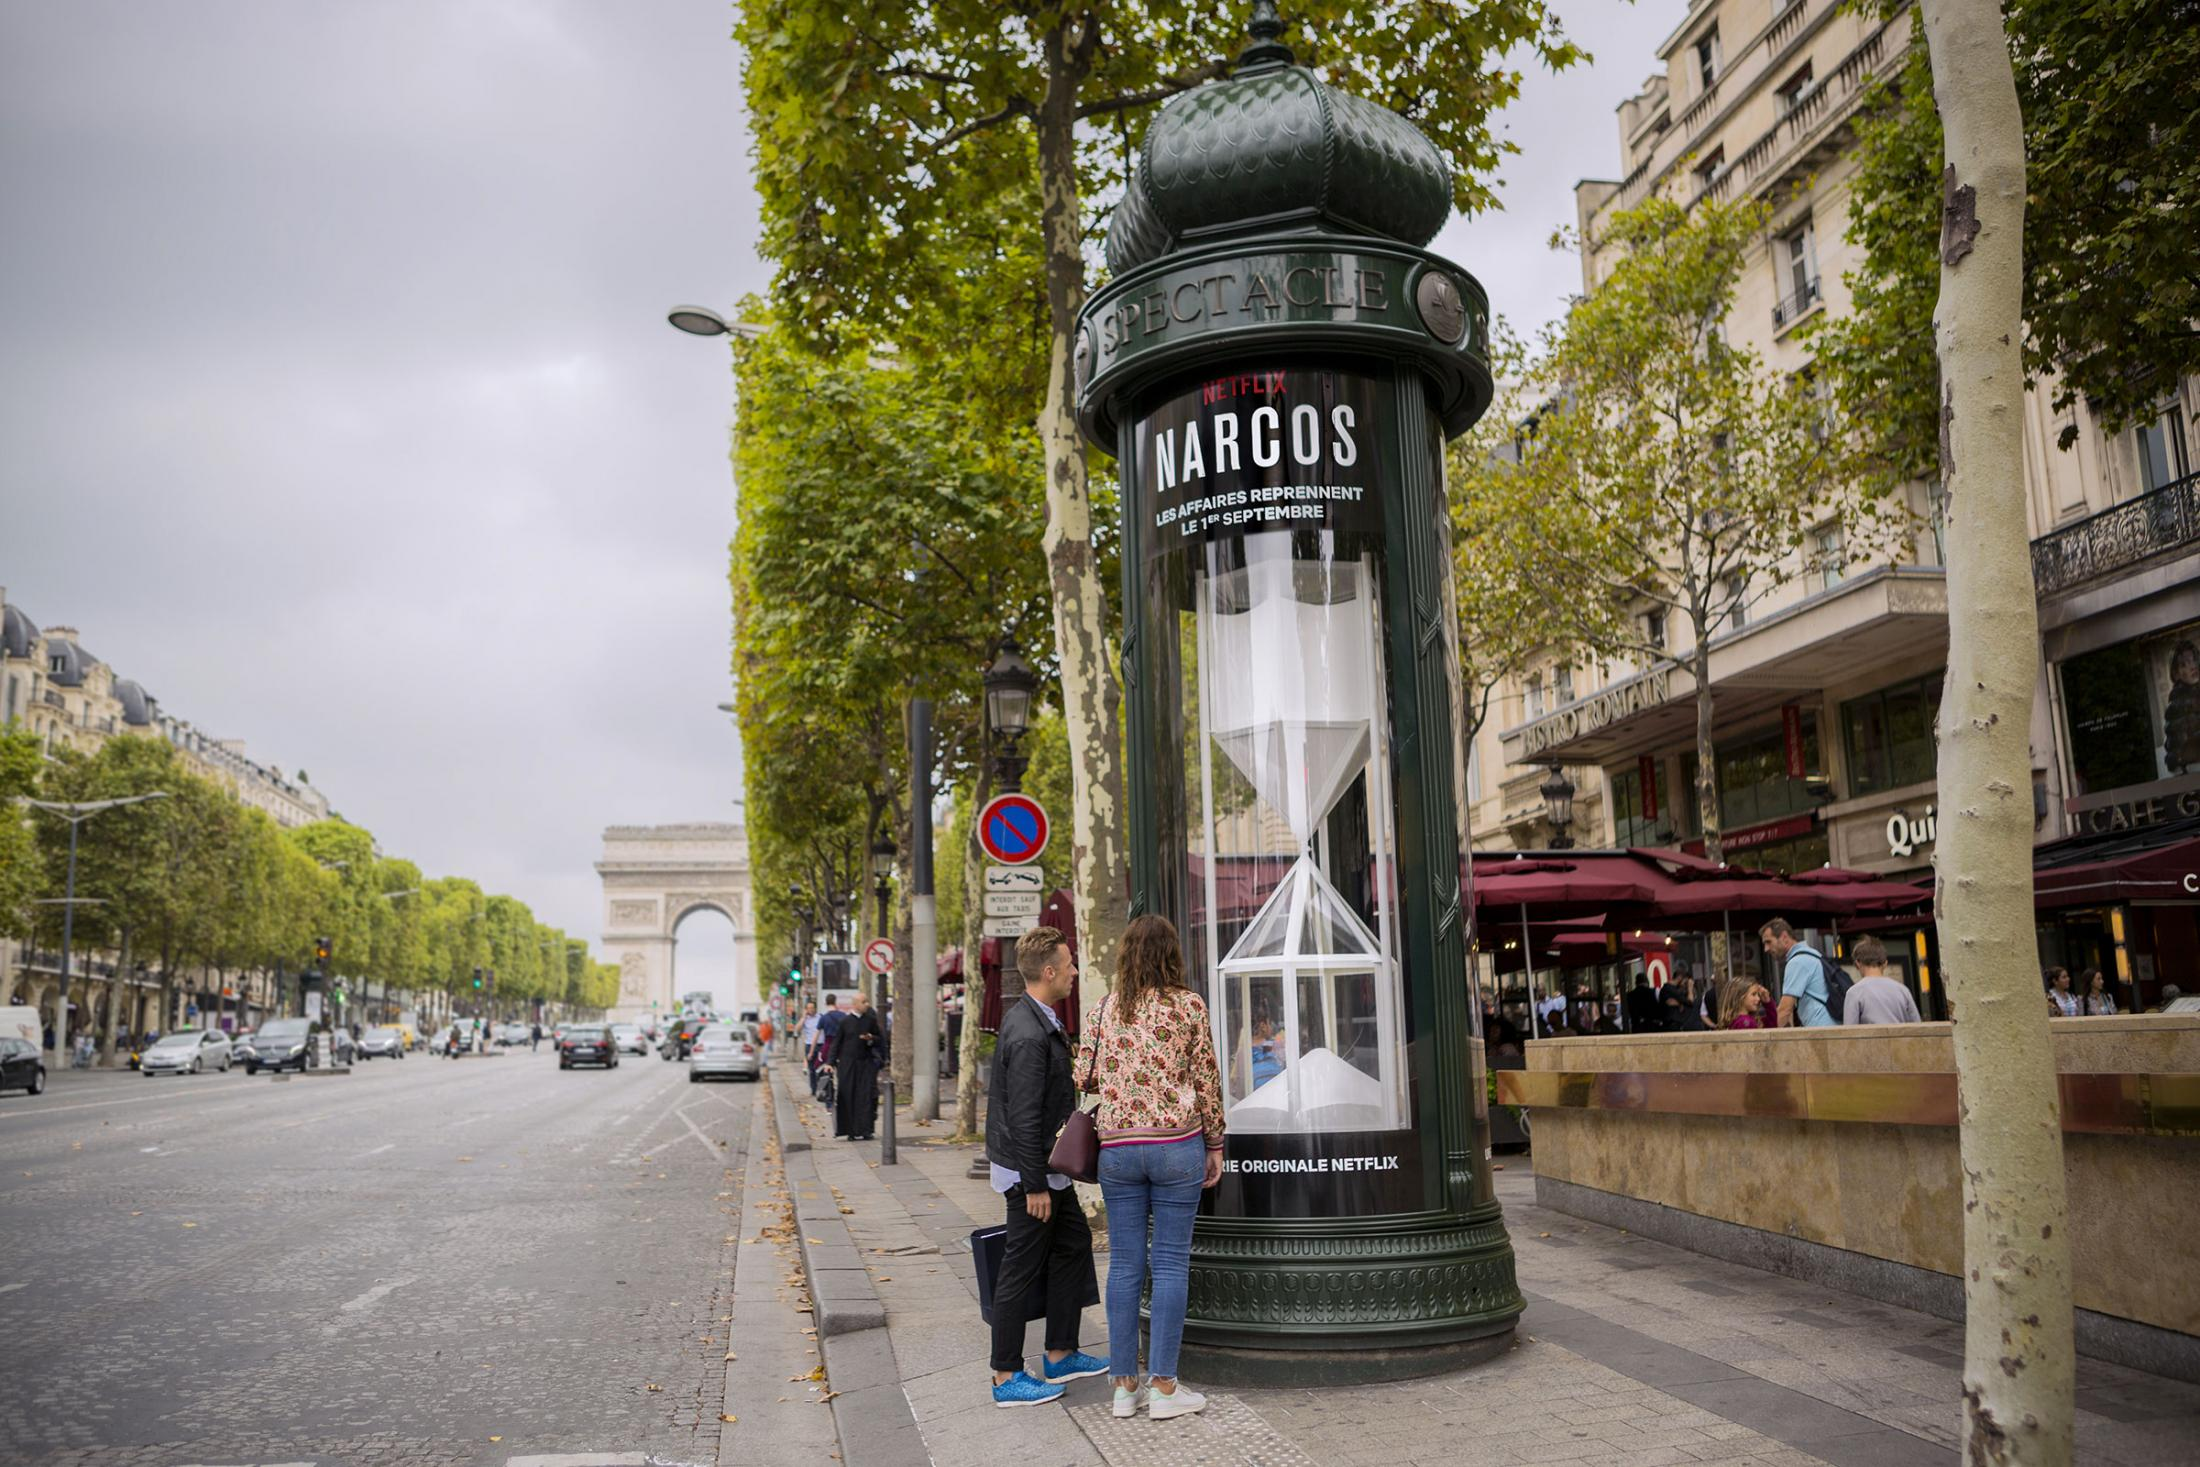 Netflix Outdoor Advert By Narcos Season 3 The White